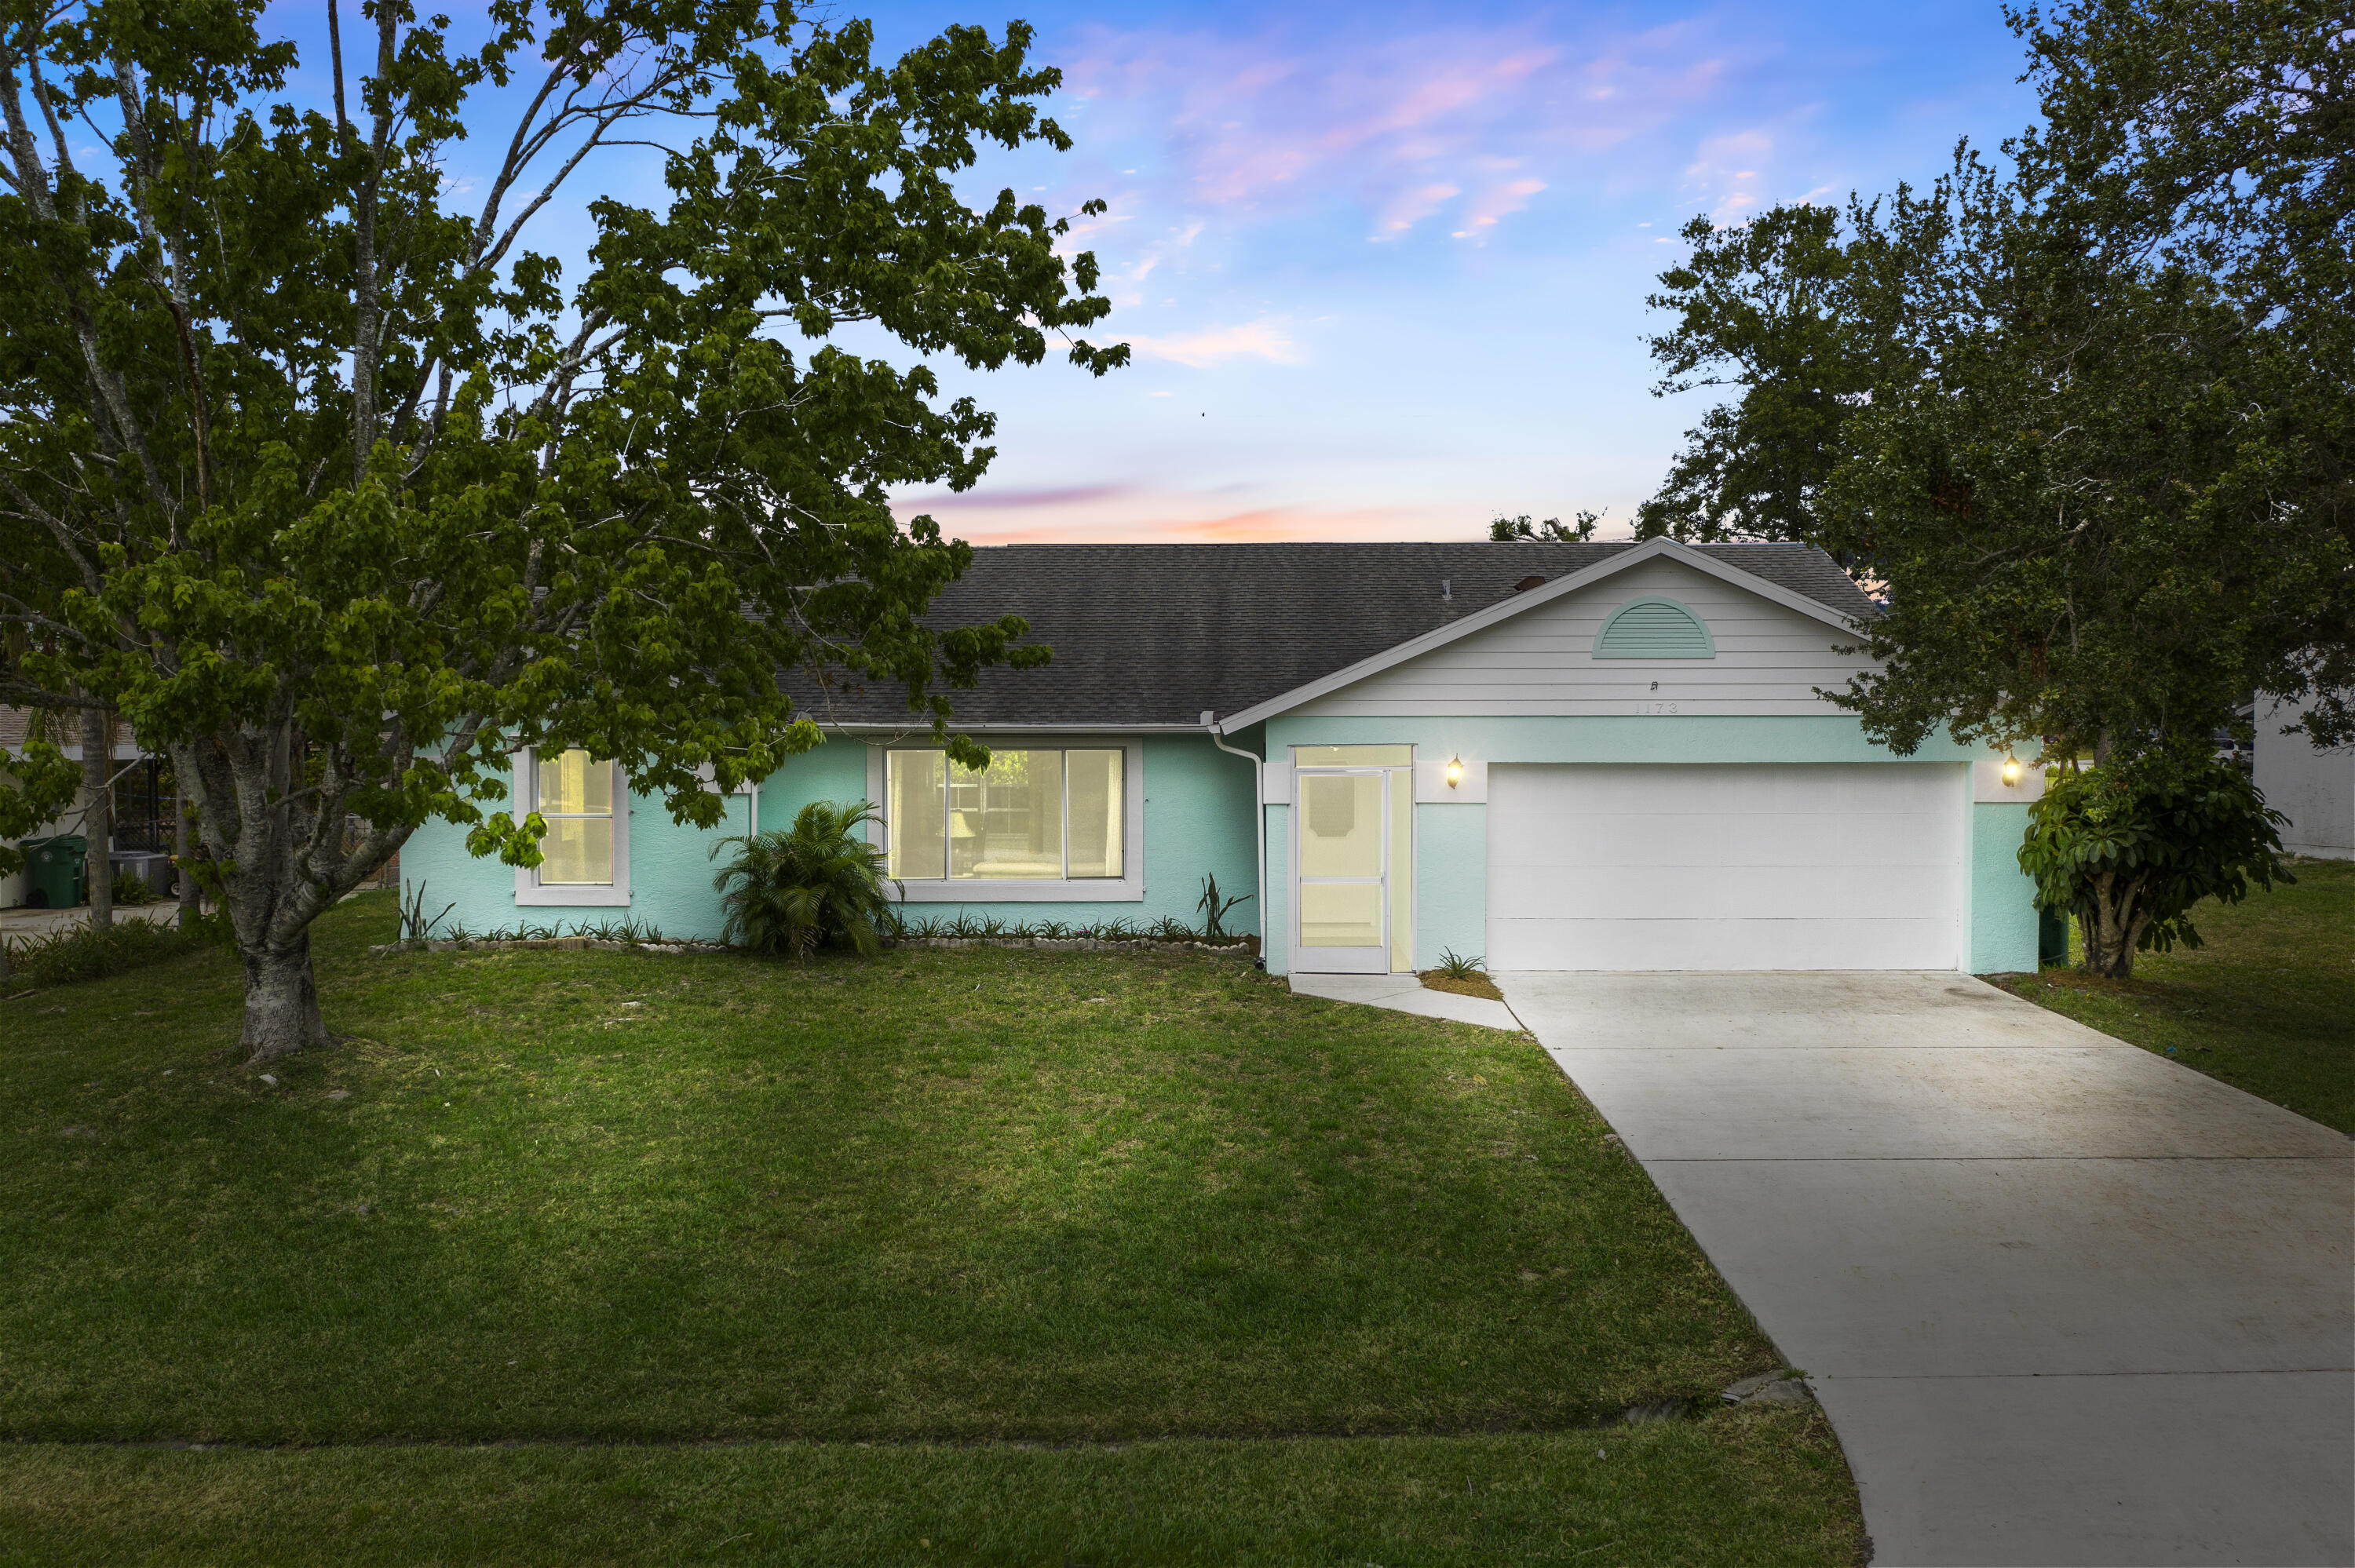 Split floor plan, move in ready 3/2/2 well maintainted home centrally located. This home is walking distance to Veteran Memorial Park located on St Lucie River with boat ramps(ocean access), close to the hospital, mall, restaurants, shopping & beaches.